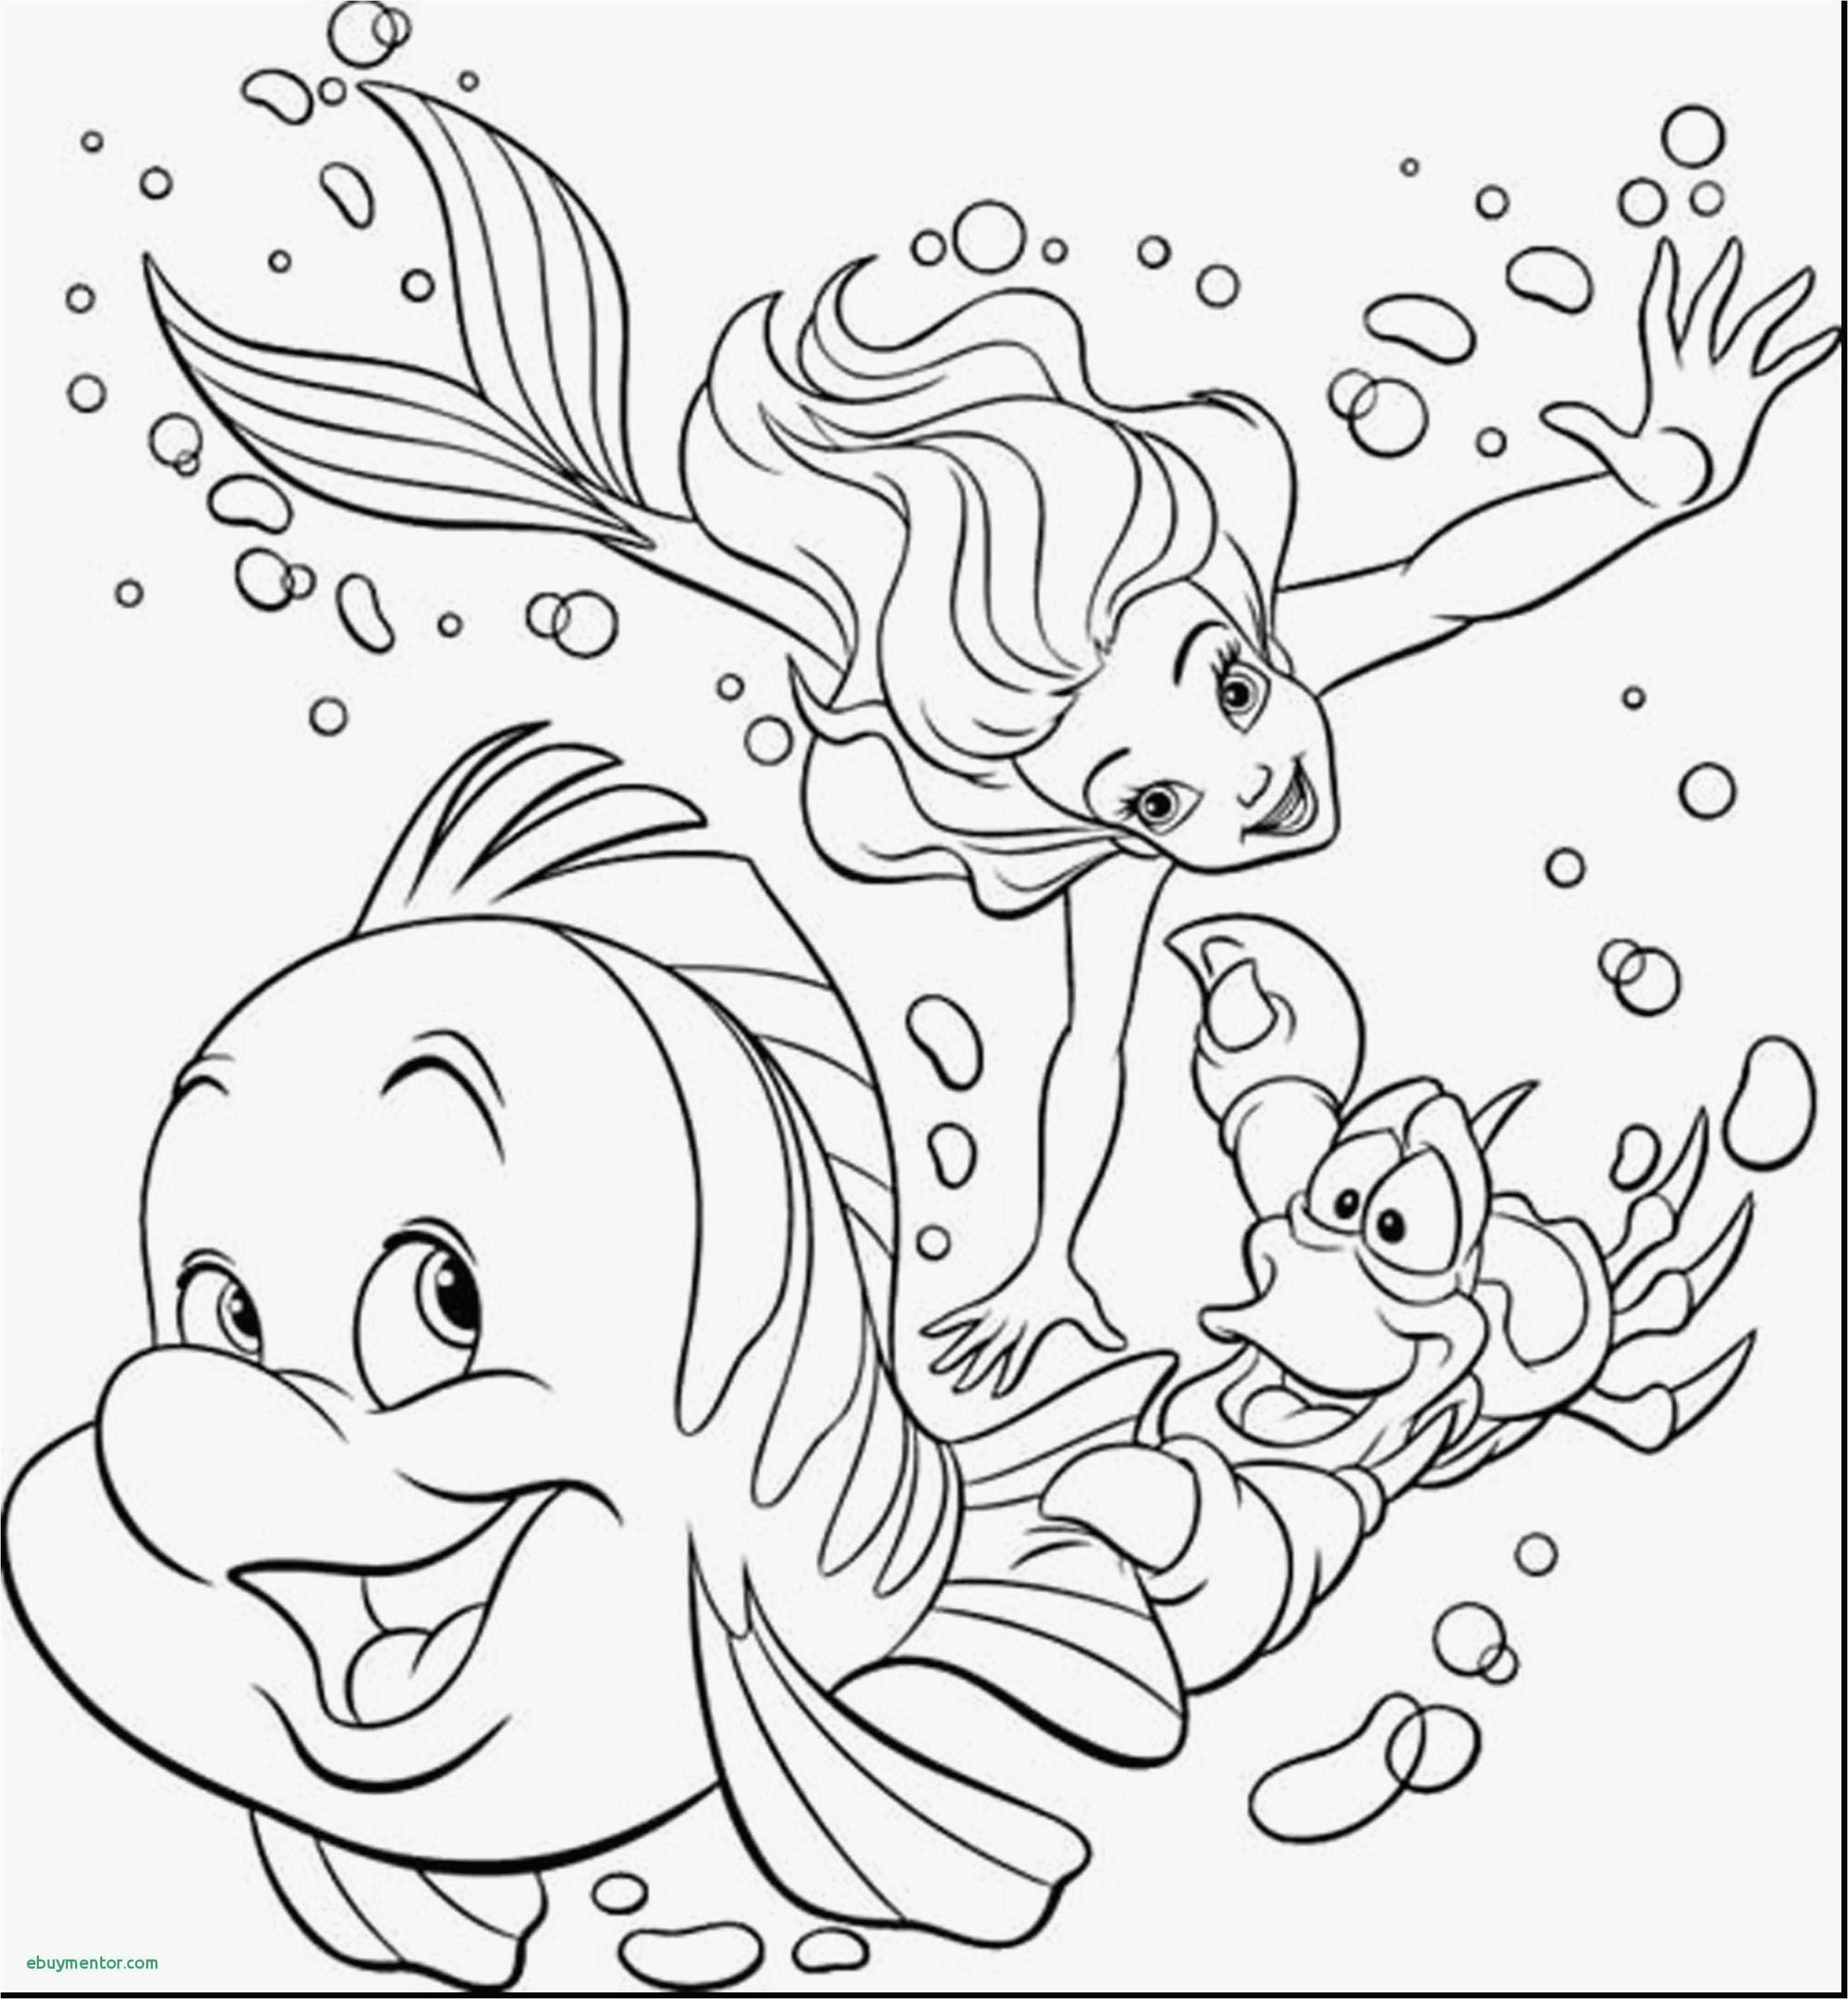 24 Pretty Image Of Sofia Coloring Pages Davemelillo Com Disney Princess Coloring Pages Ariel Coloring Pages Mermaid Coloring Pages